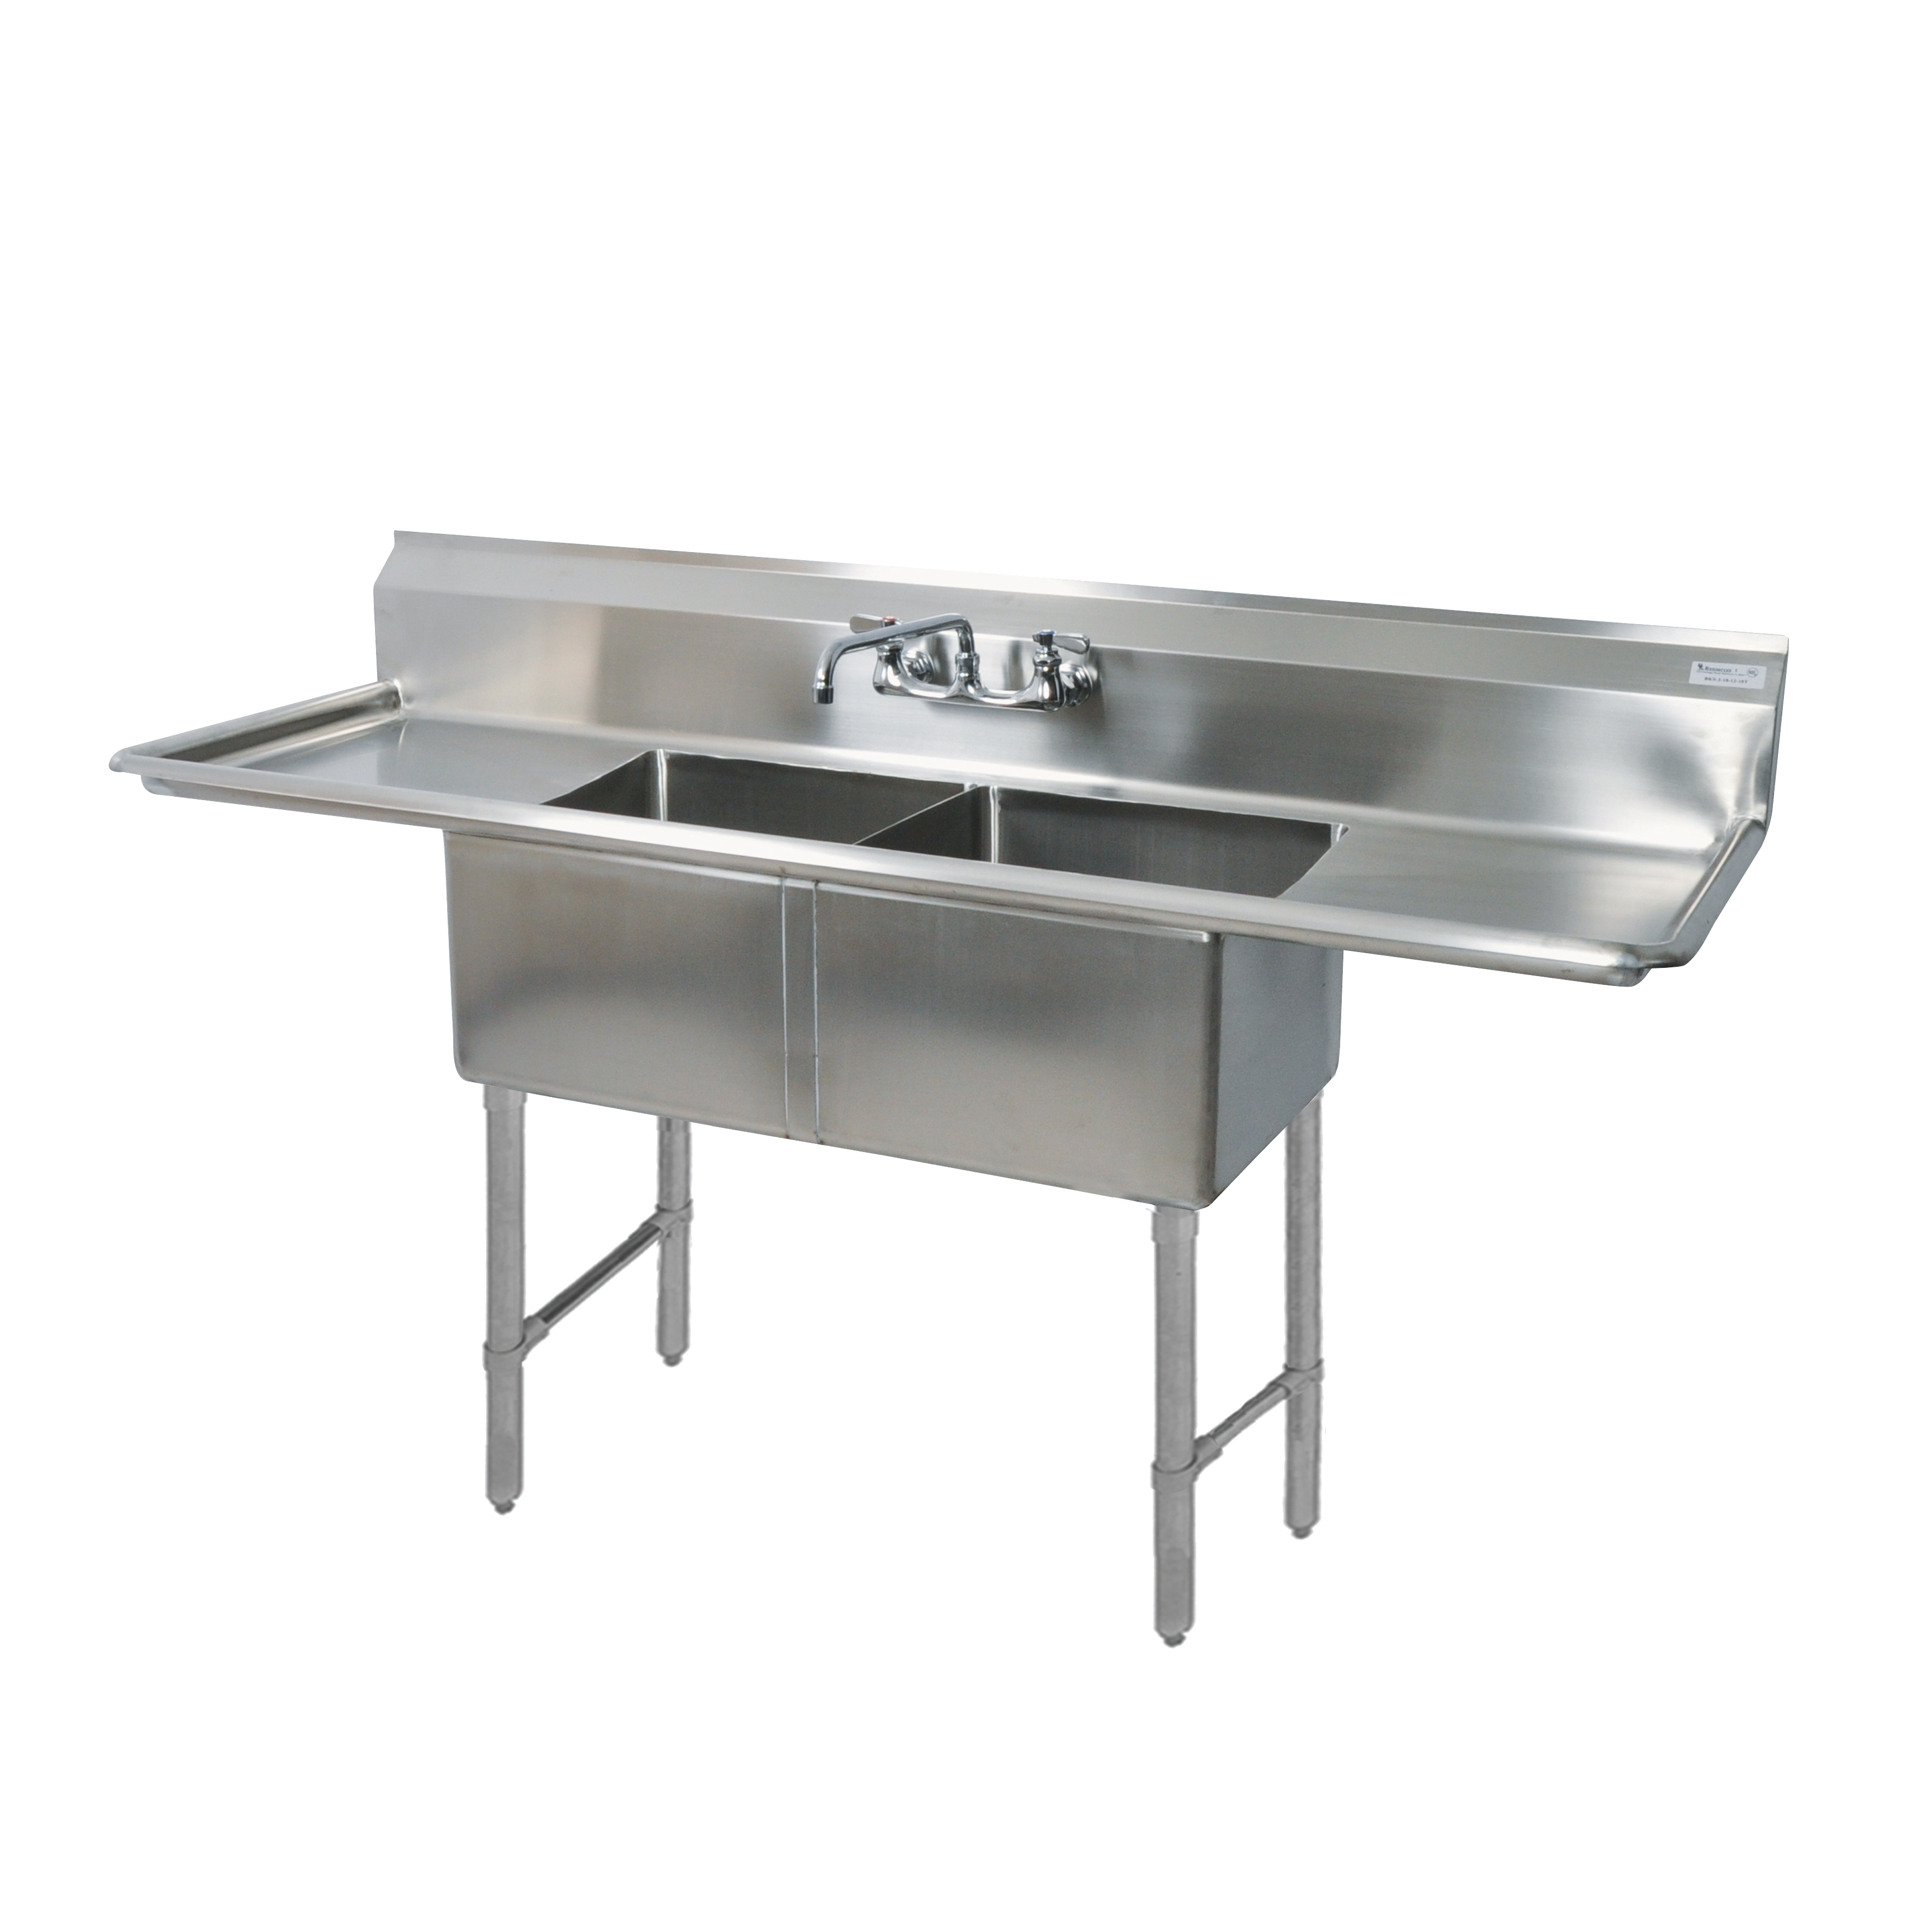 BK Resources BKS6-2-24-14-24TS sink, (2) two compartment